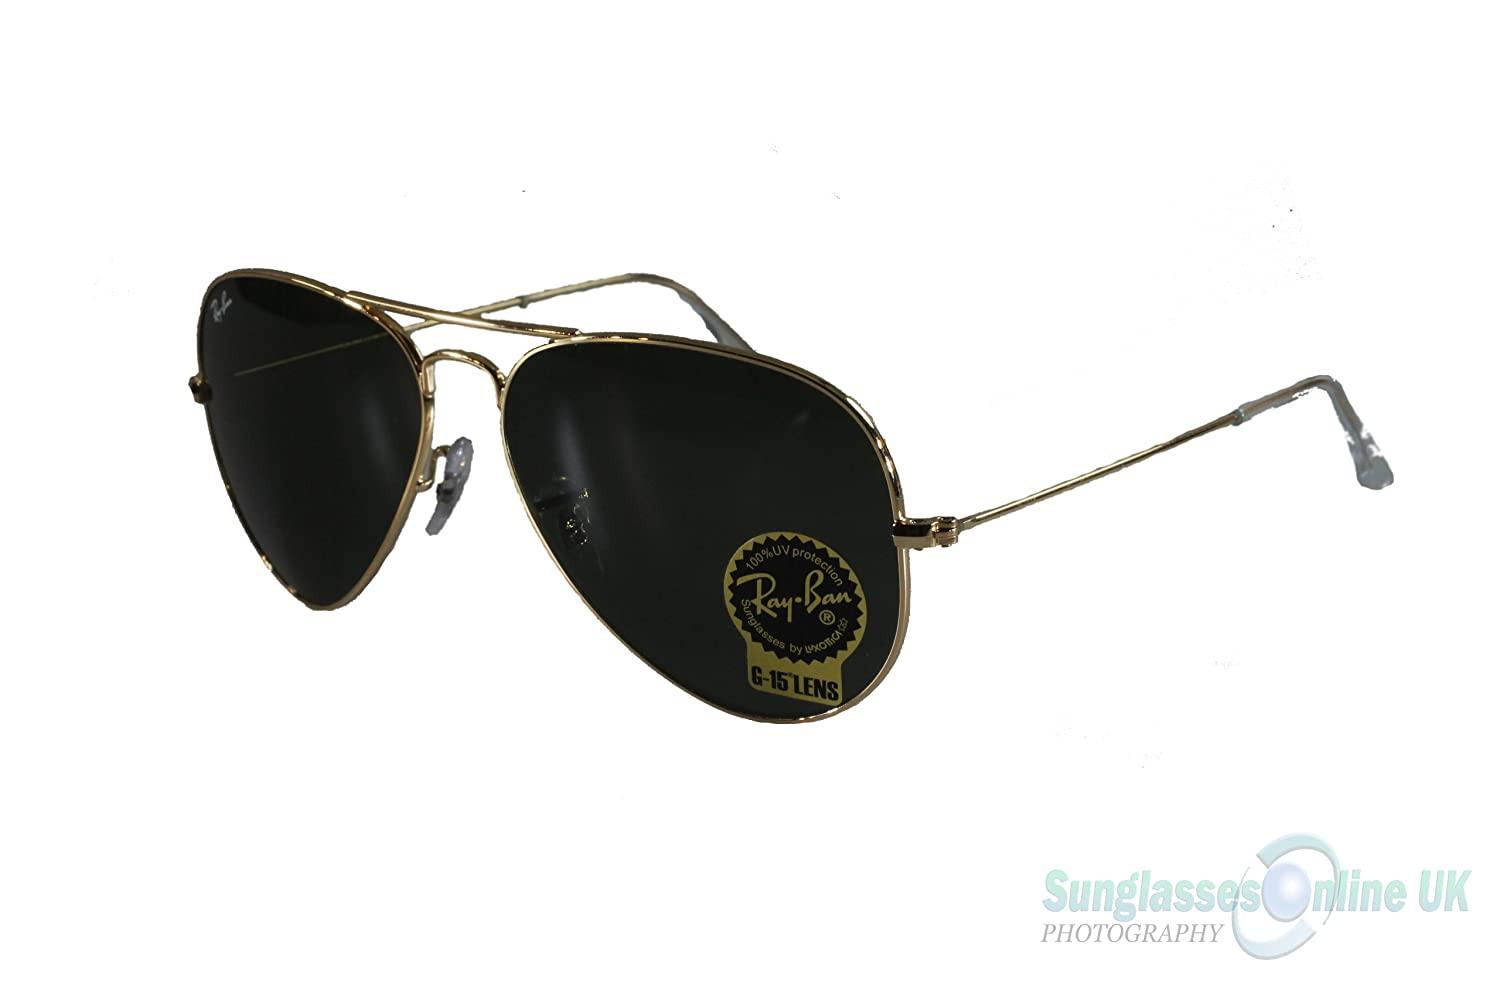 3d87aef7c34c Ray Ban Large Metal Aviator Sunglasses - Model 3025 L0205 - Gold Frame with  G15 XLT Toughened Glass Safety Lenses - 58mm Lens size - Box with Ray Ban  case ...